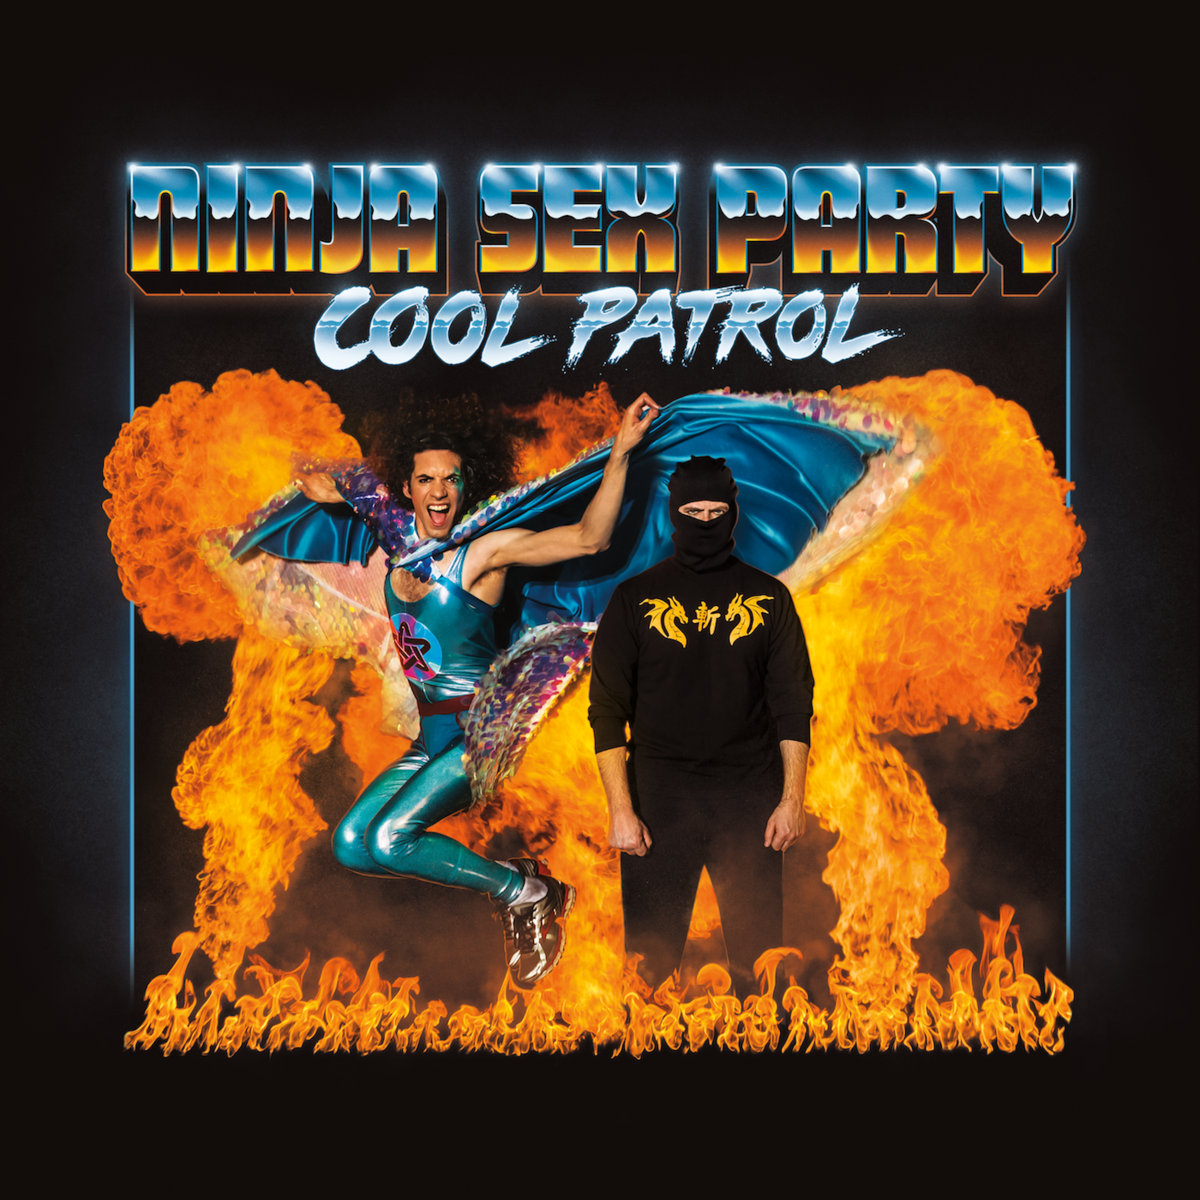 Cool Patrol's cover. On it, we have Danny Sexbang and Ninja Brian just being who they are. Danny's jumping in the air and Brian is standing, stoic and still while flames erupt behind them.